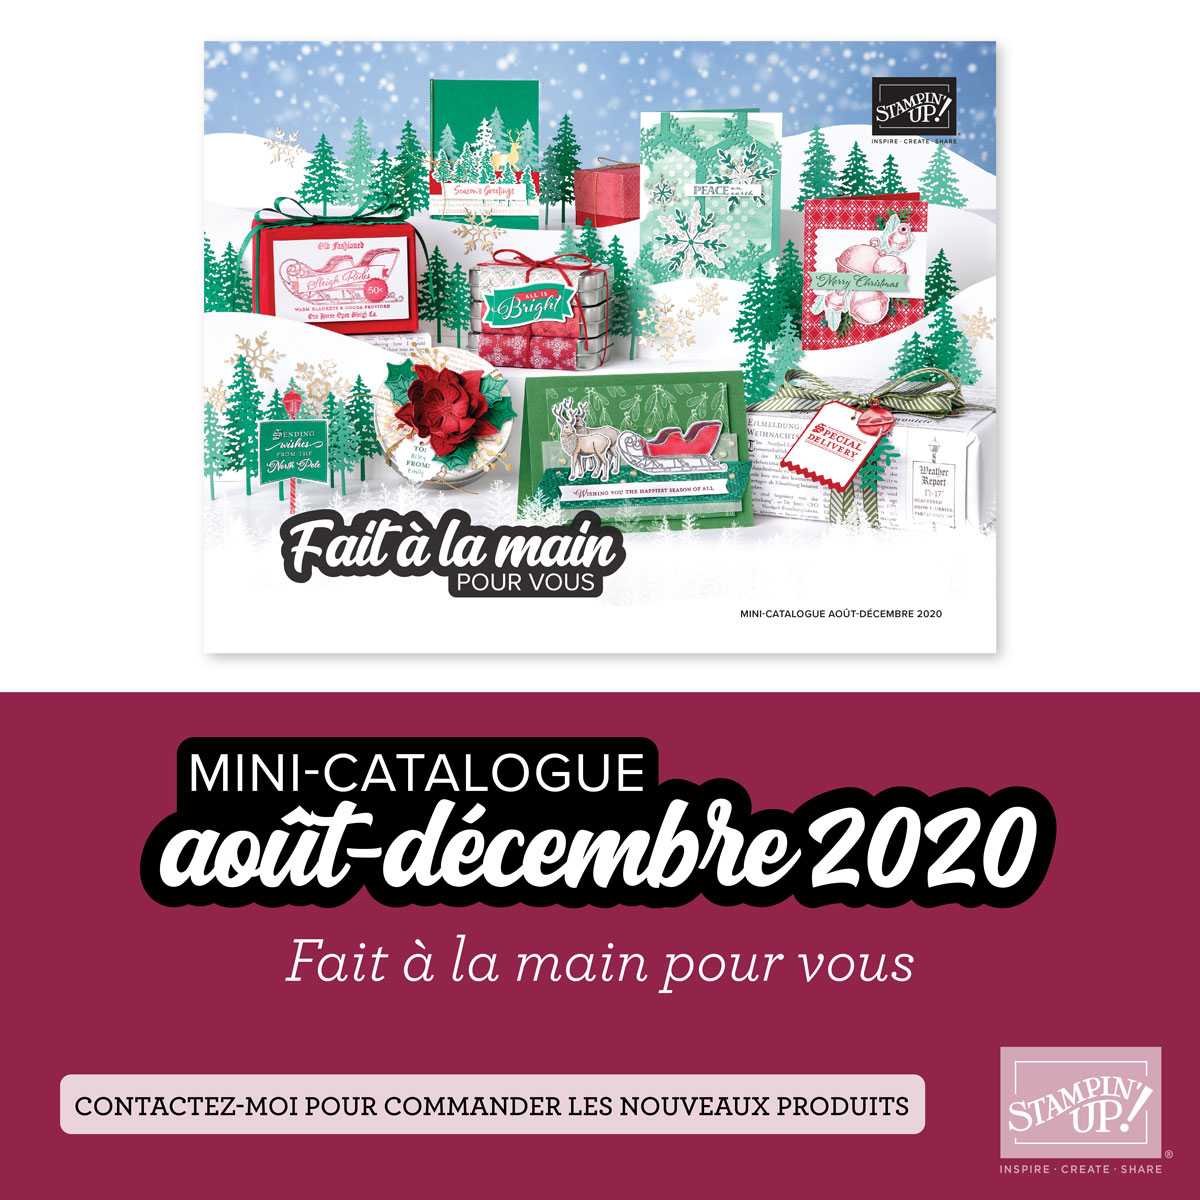 07.01.20_SHAREABLE_AD_CATALOG_PREORDER_FR